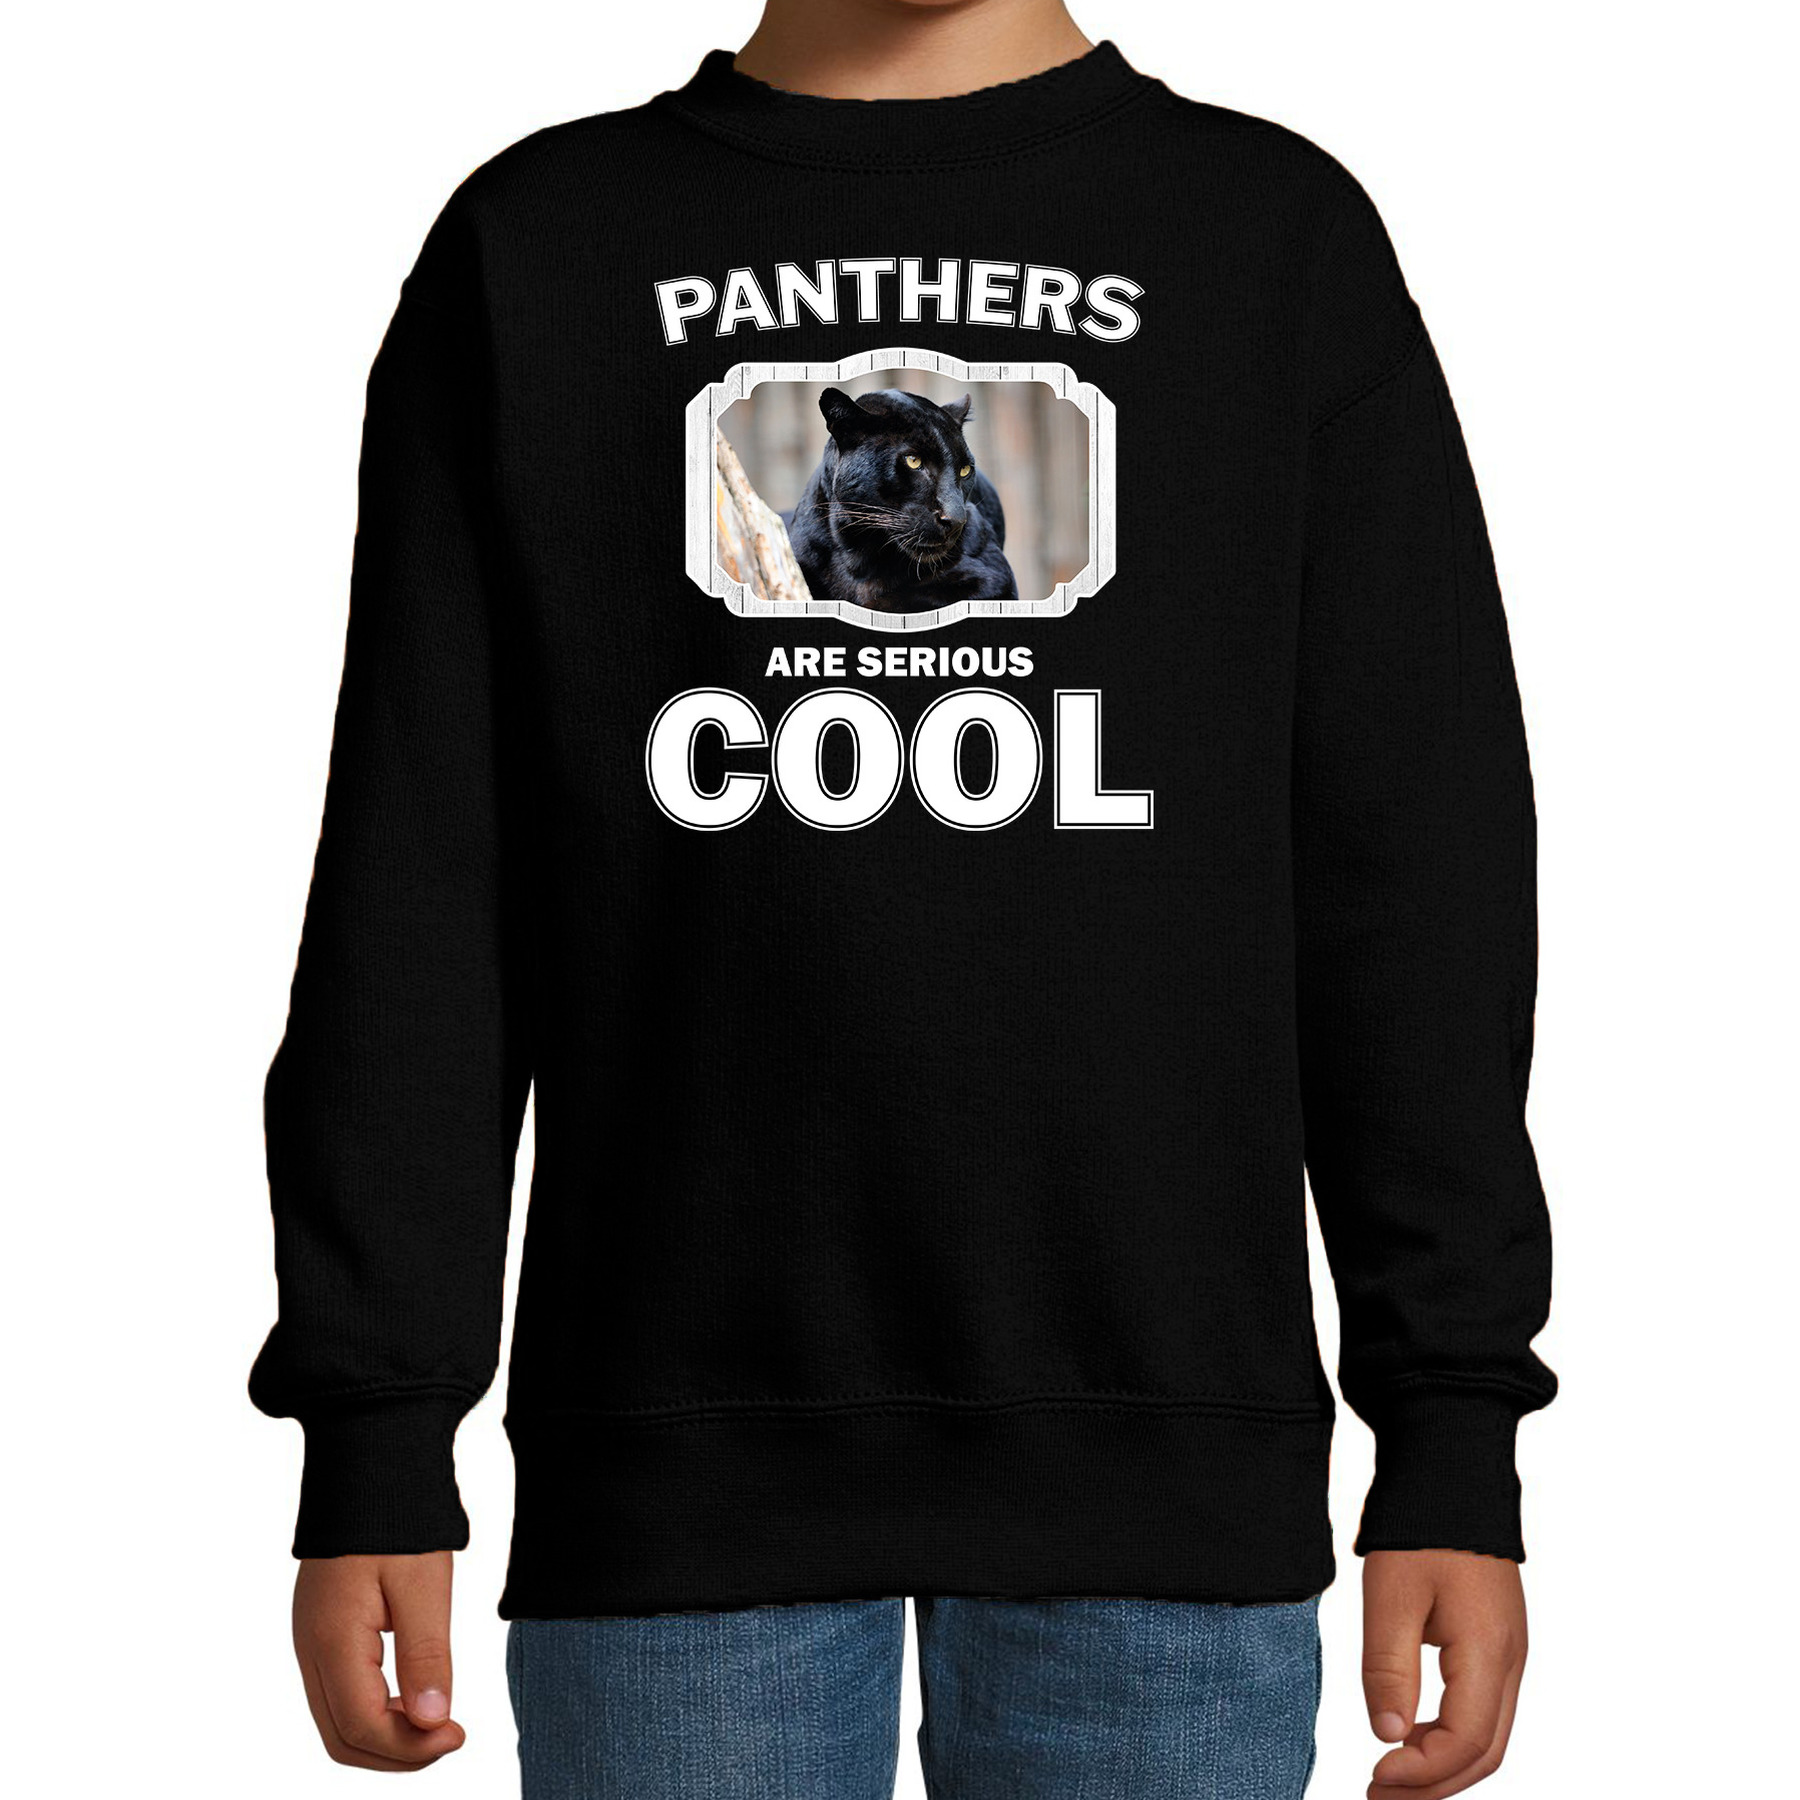 Sweater panthers are serious cool zwart kinderen - panters/ zwarte panter trui